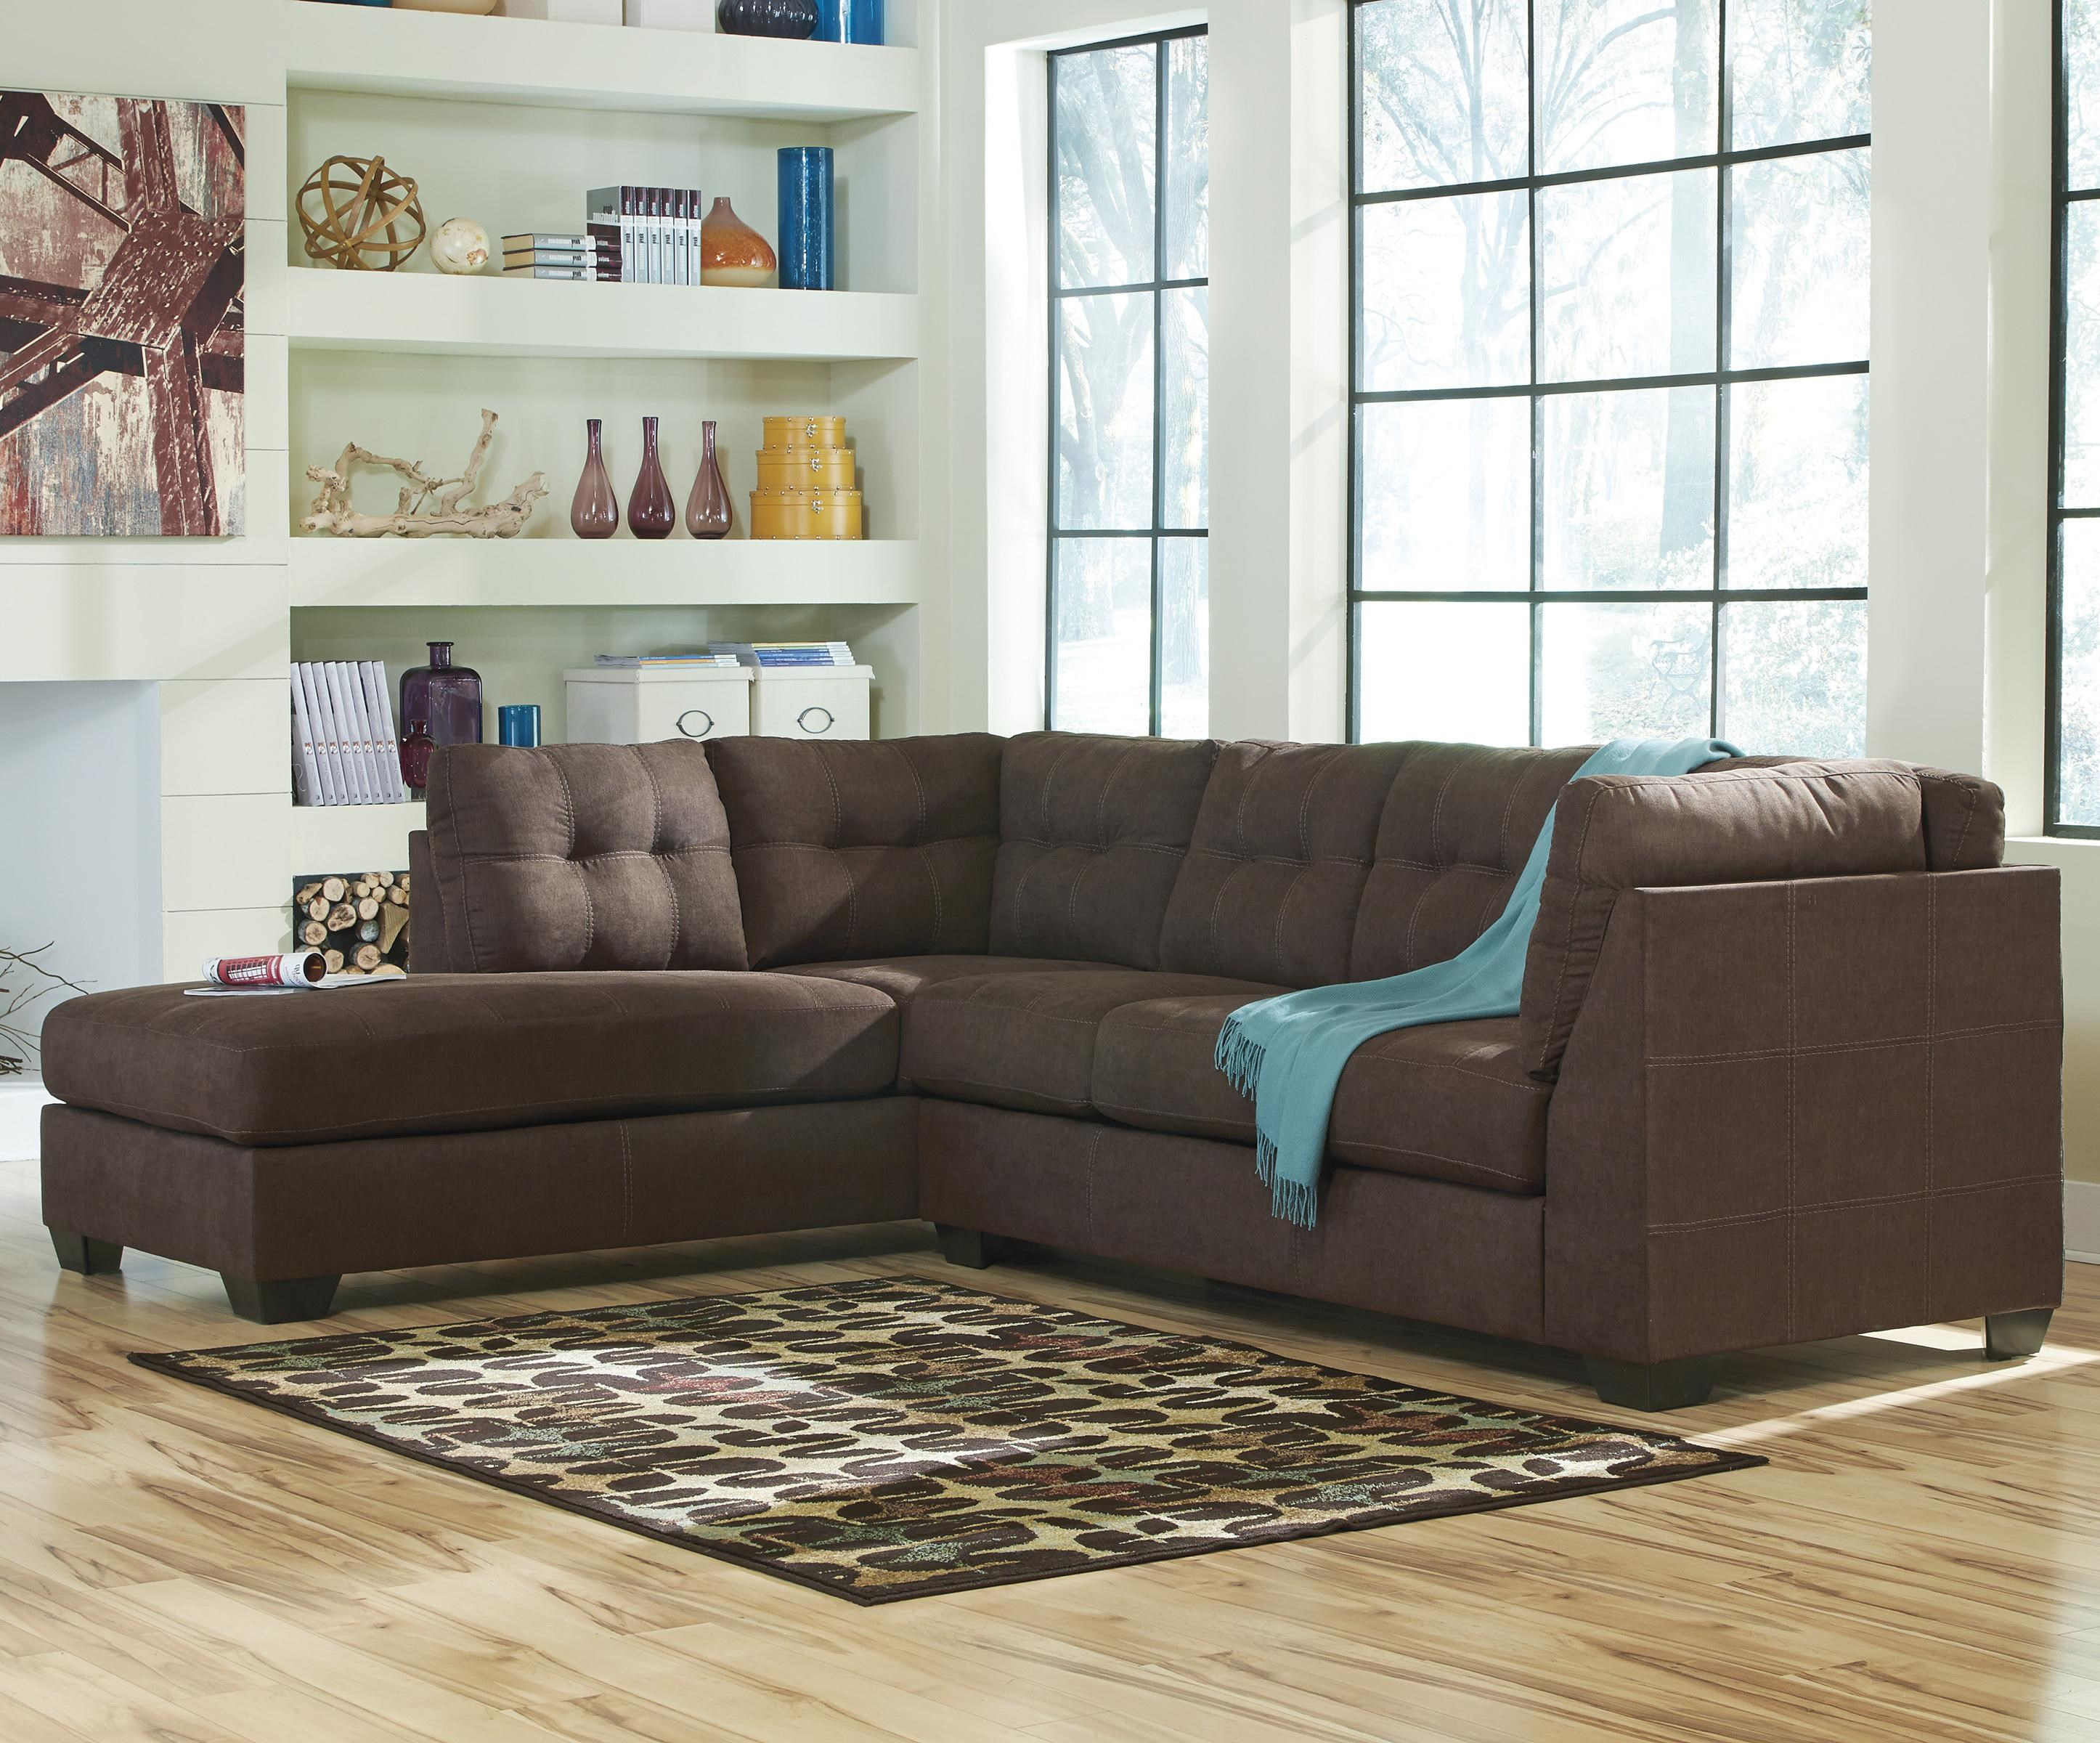 Benchcraft By Ashley Maier   Walnut2 Piece Sectional With Left Chaise ...